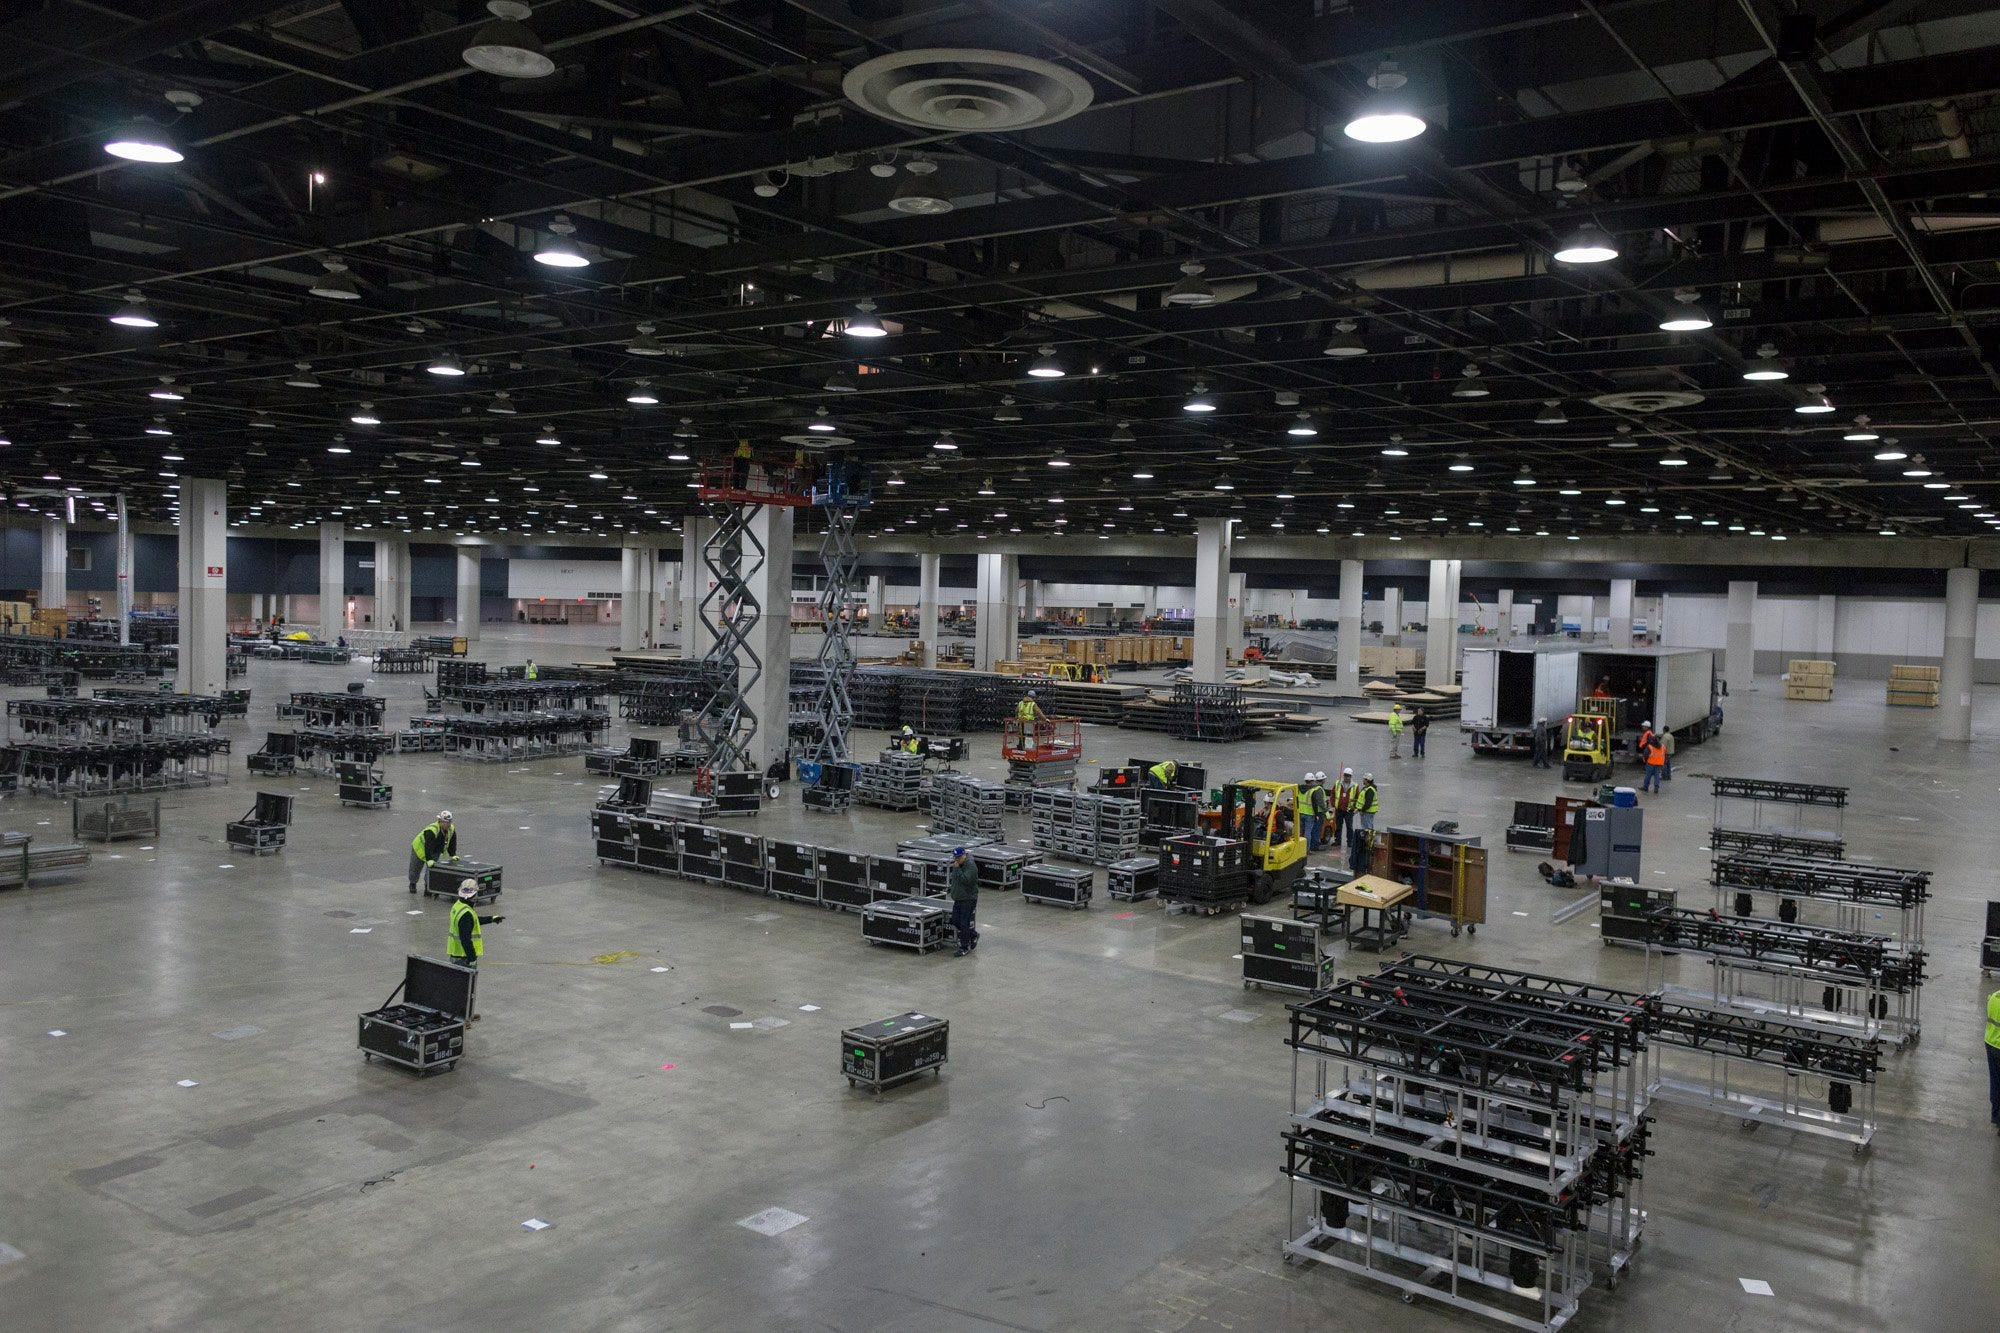 Construction crews load in lighting trusses at Cobo